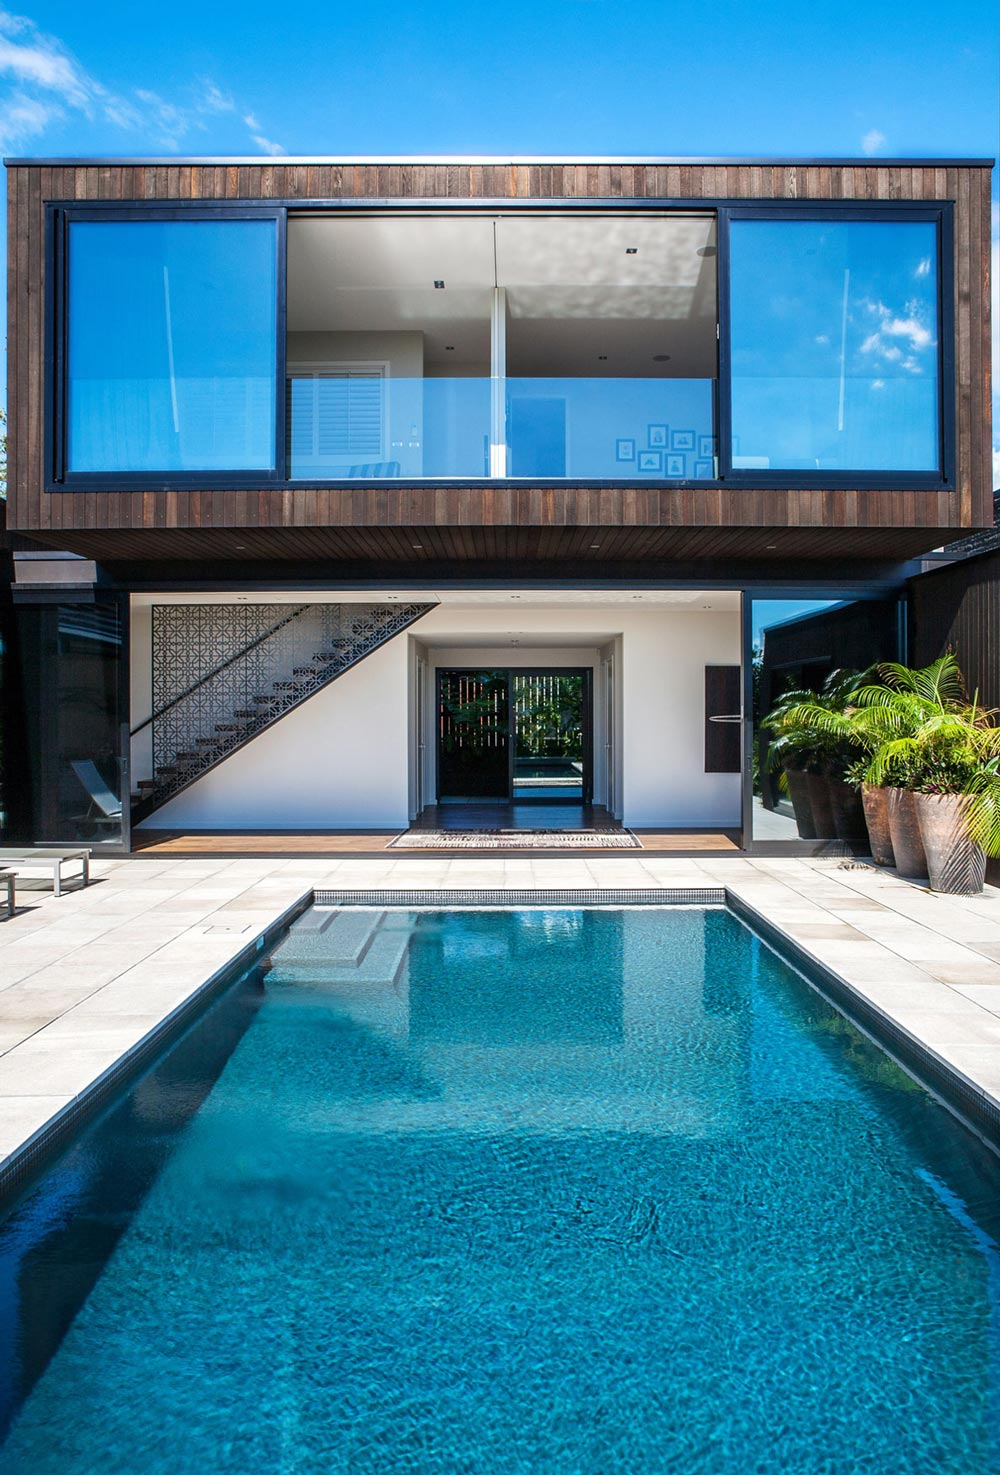 Swimming pool terrace large windows modern house in Modern houses with big windows